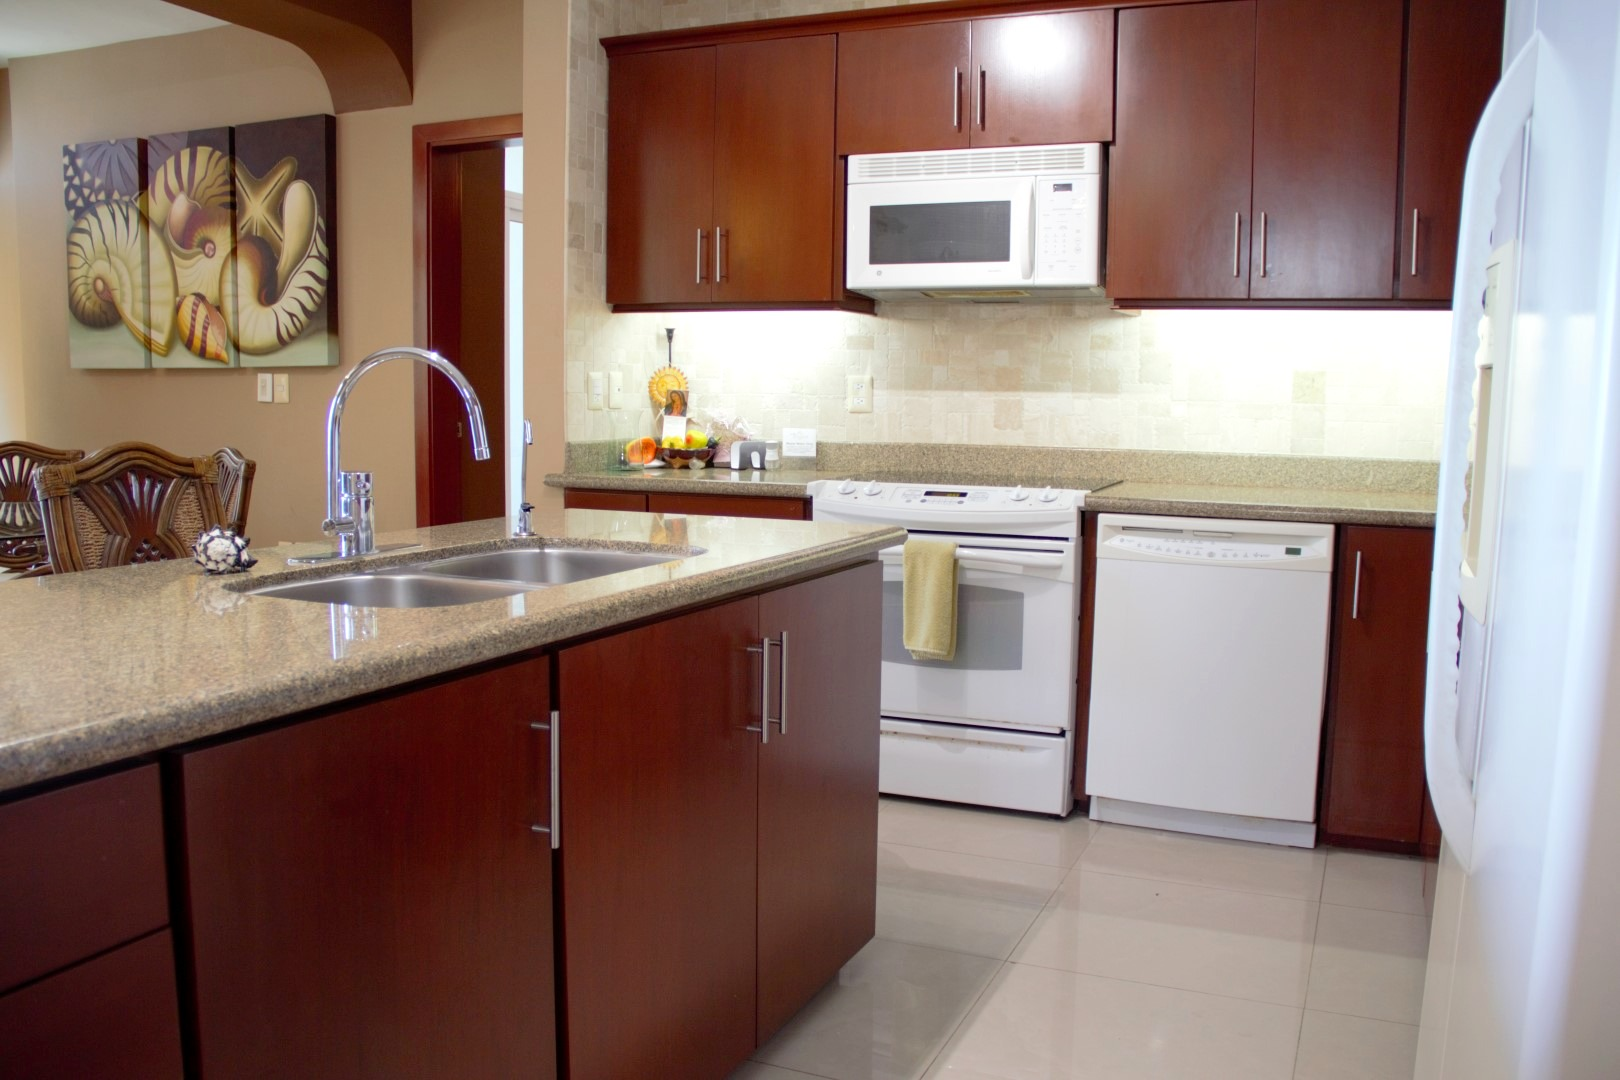 Fully equipped with stove, oven, dishwasher, microwave and fridge.